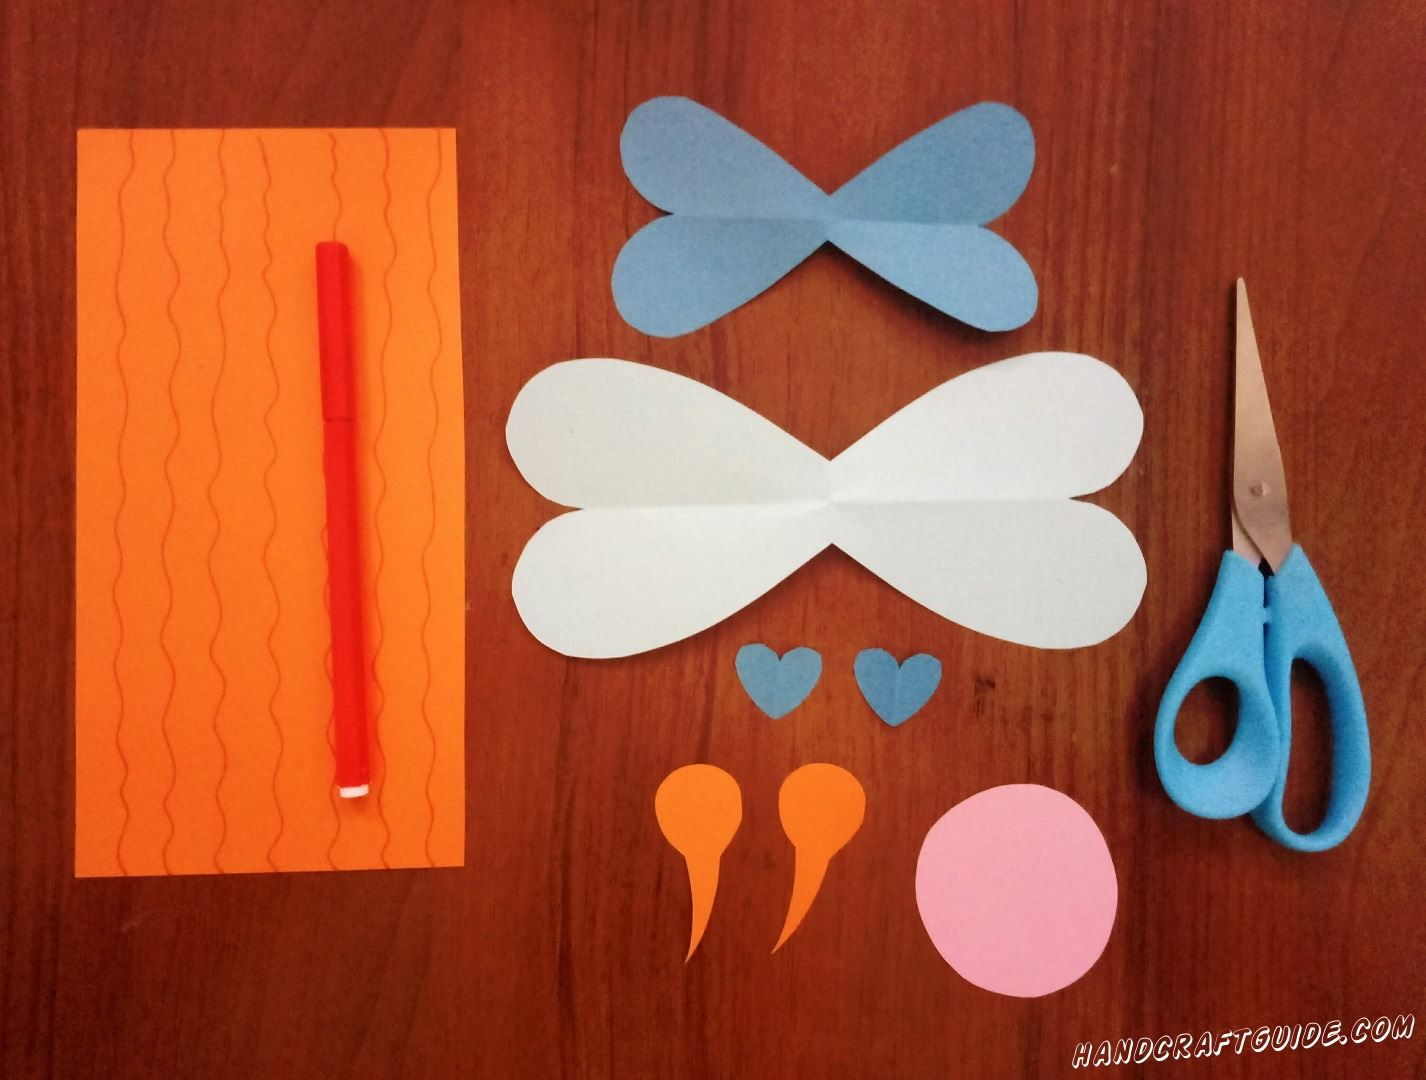 Cut the wings out of white paper and the smaller ones out of blue paper, cut out 2 blue hearts, pink circle and 2 orange circles with tails.Draw wavy lines on the orange rectangle.